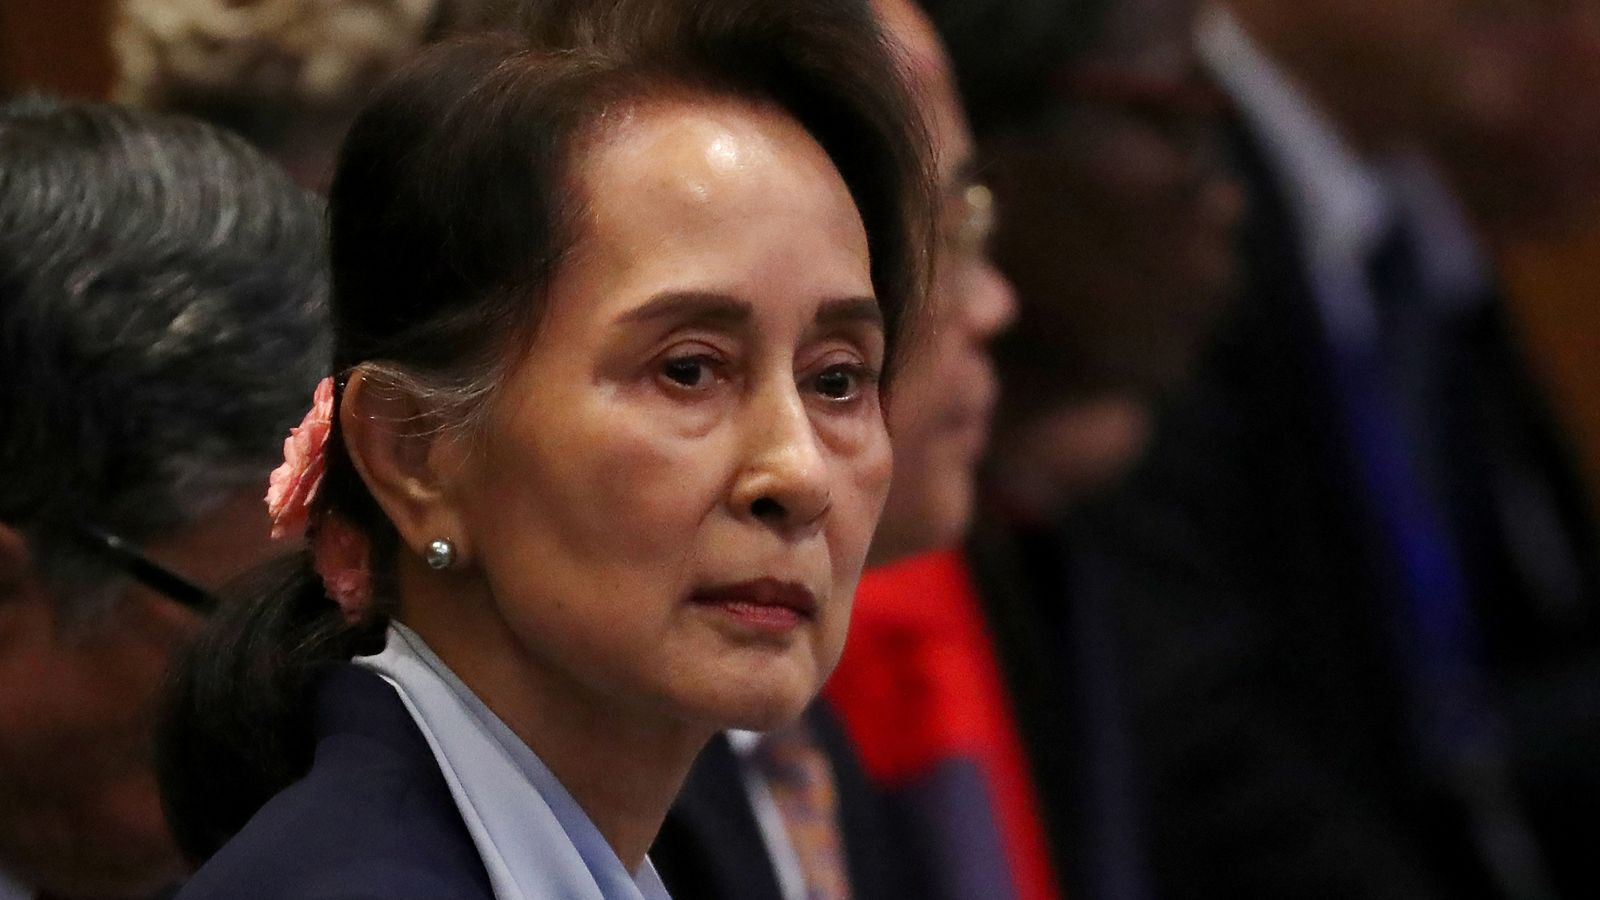 Myanmar Coup: Military Takes Control Over the Arrests of Aung San Suu Kyi and Other Important Government Figures |  world News